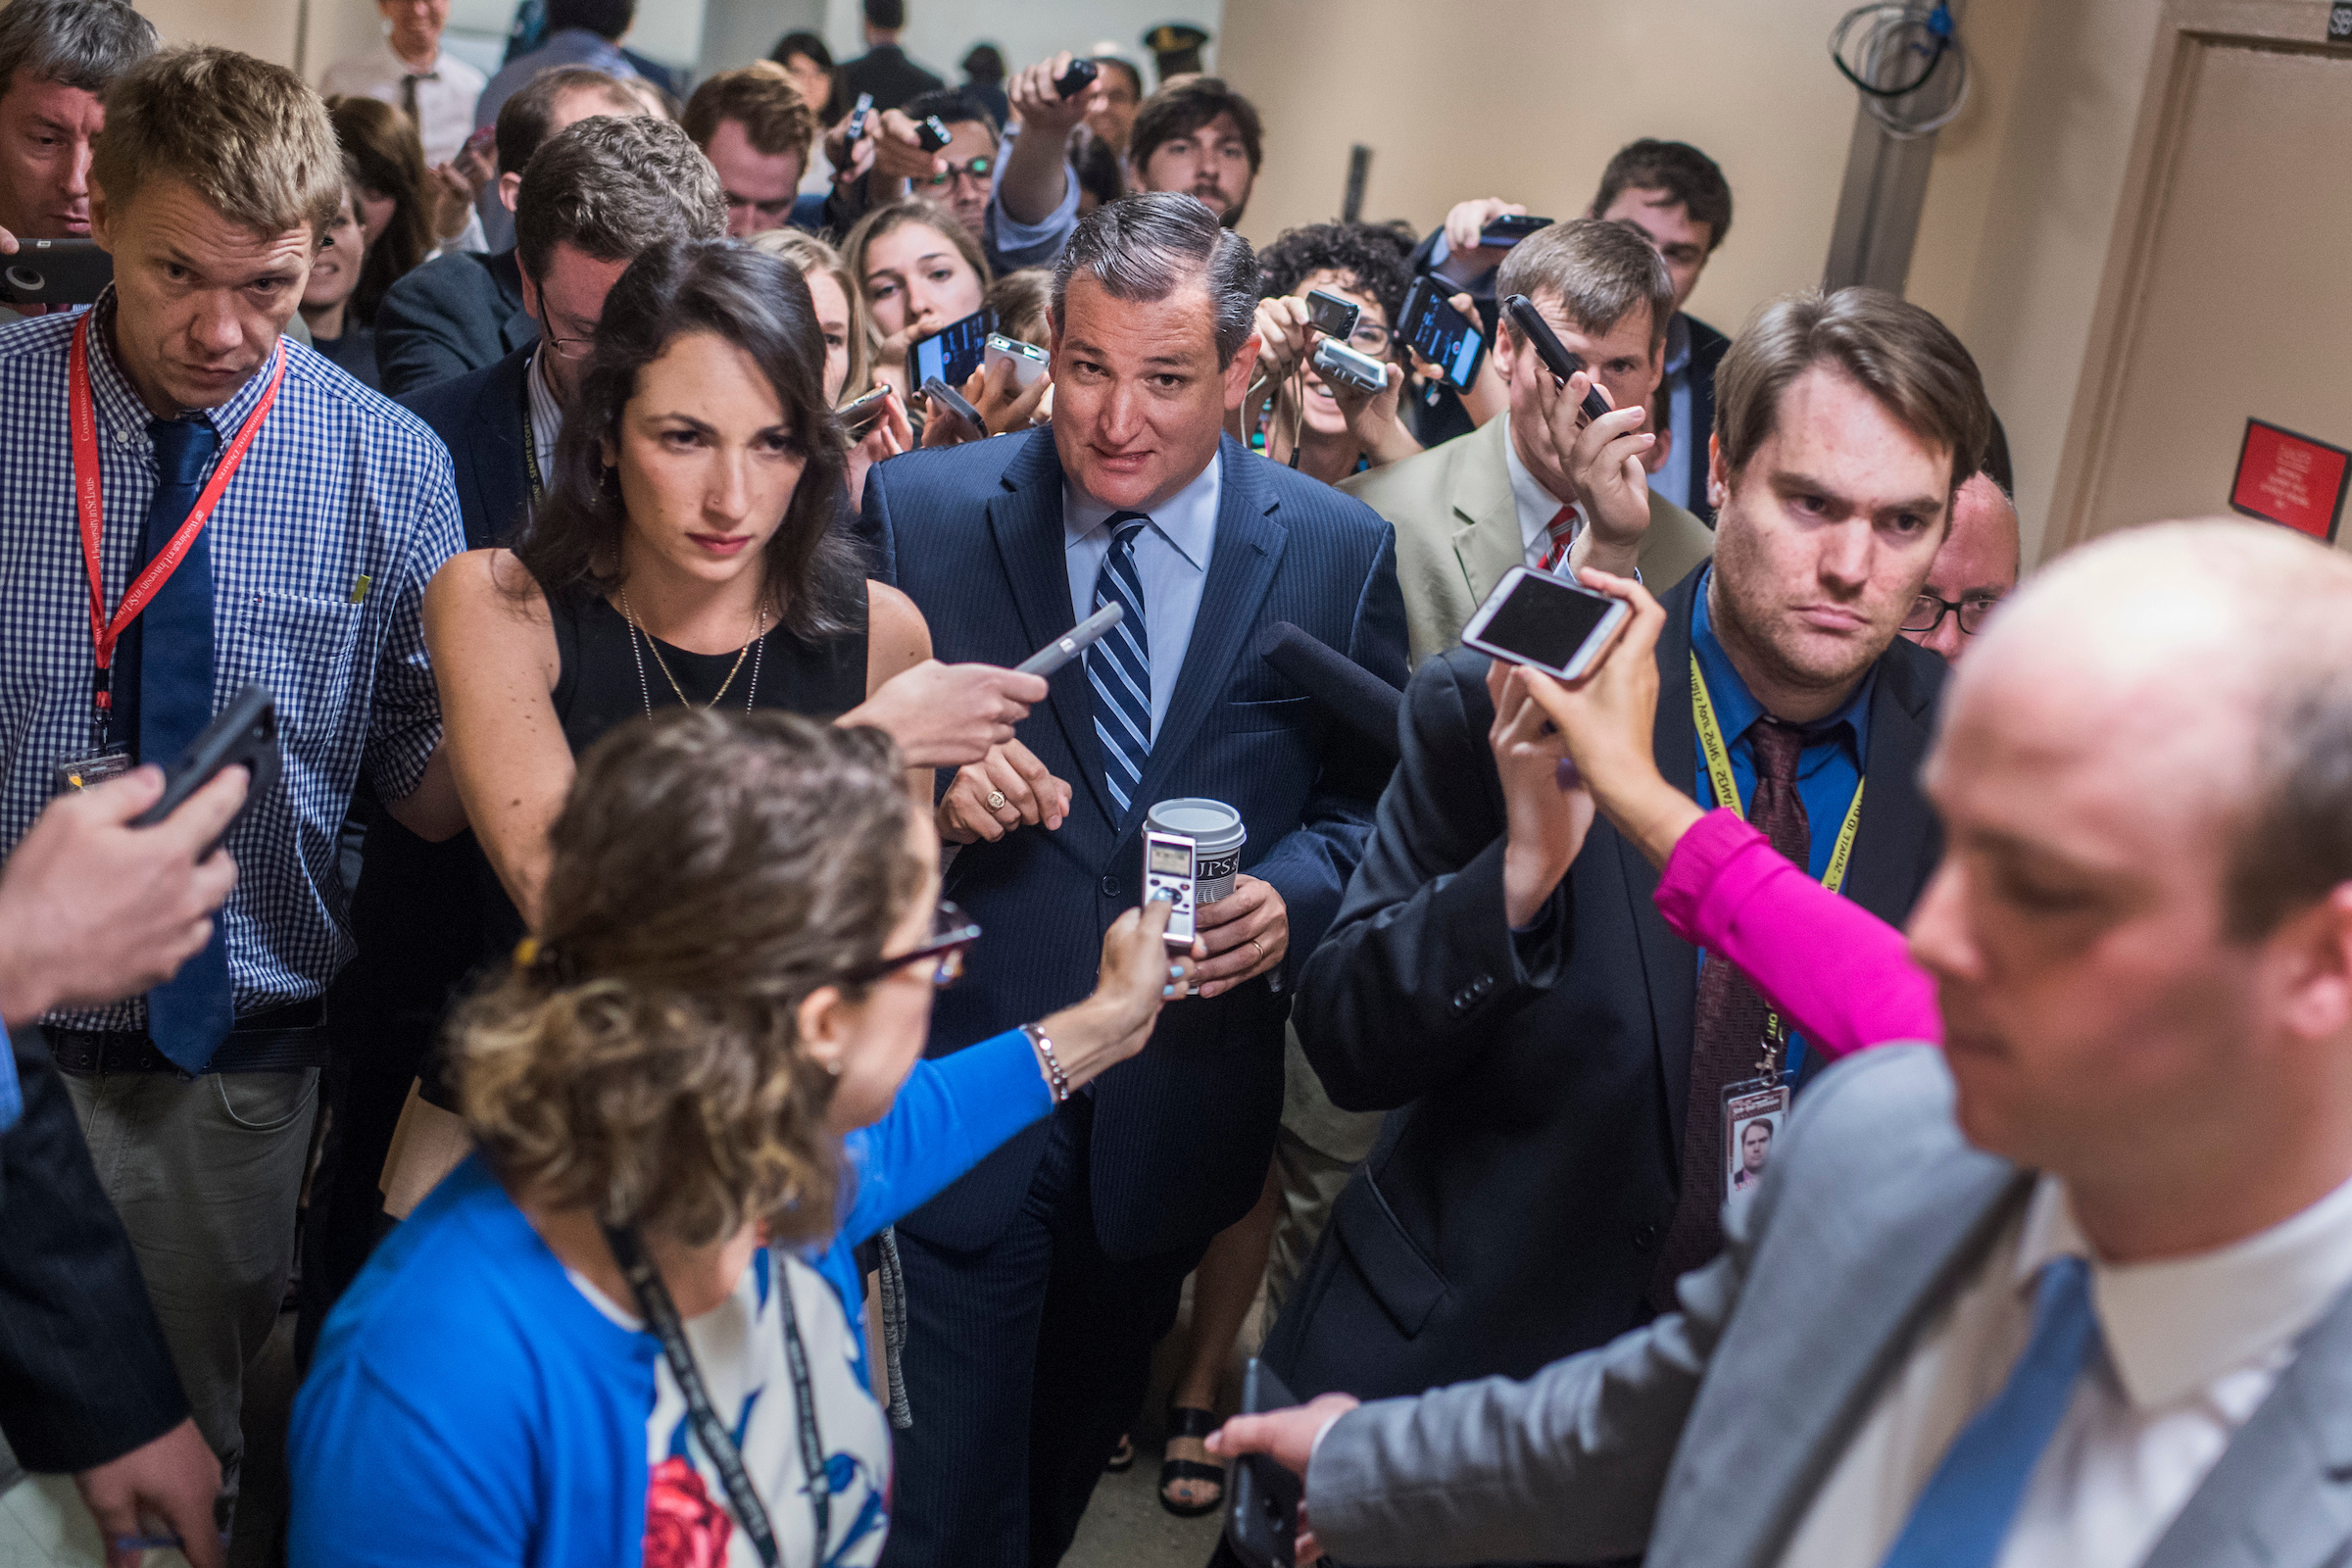 UNITED STATES - JULY 18: Sen. Ted Cruz, R-Texas, talks with reporters before the Senate Policy Luncheons in the Capitol on July 18, 2017. (Photo By Tom Williams/CQ Roll Call)